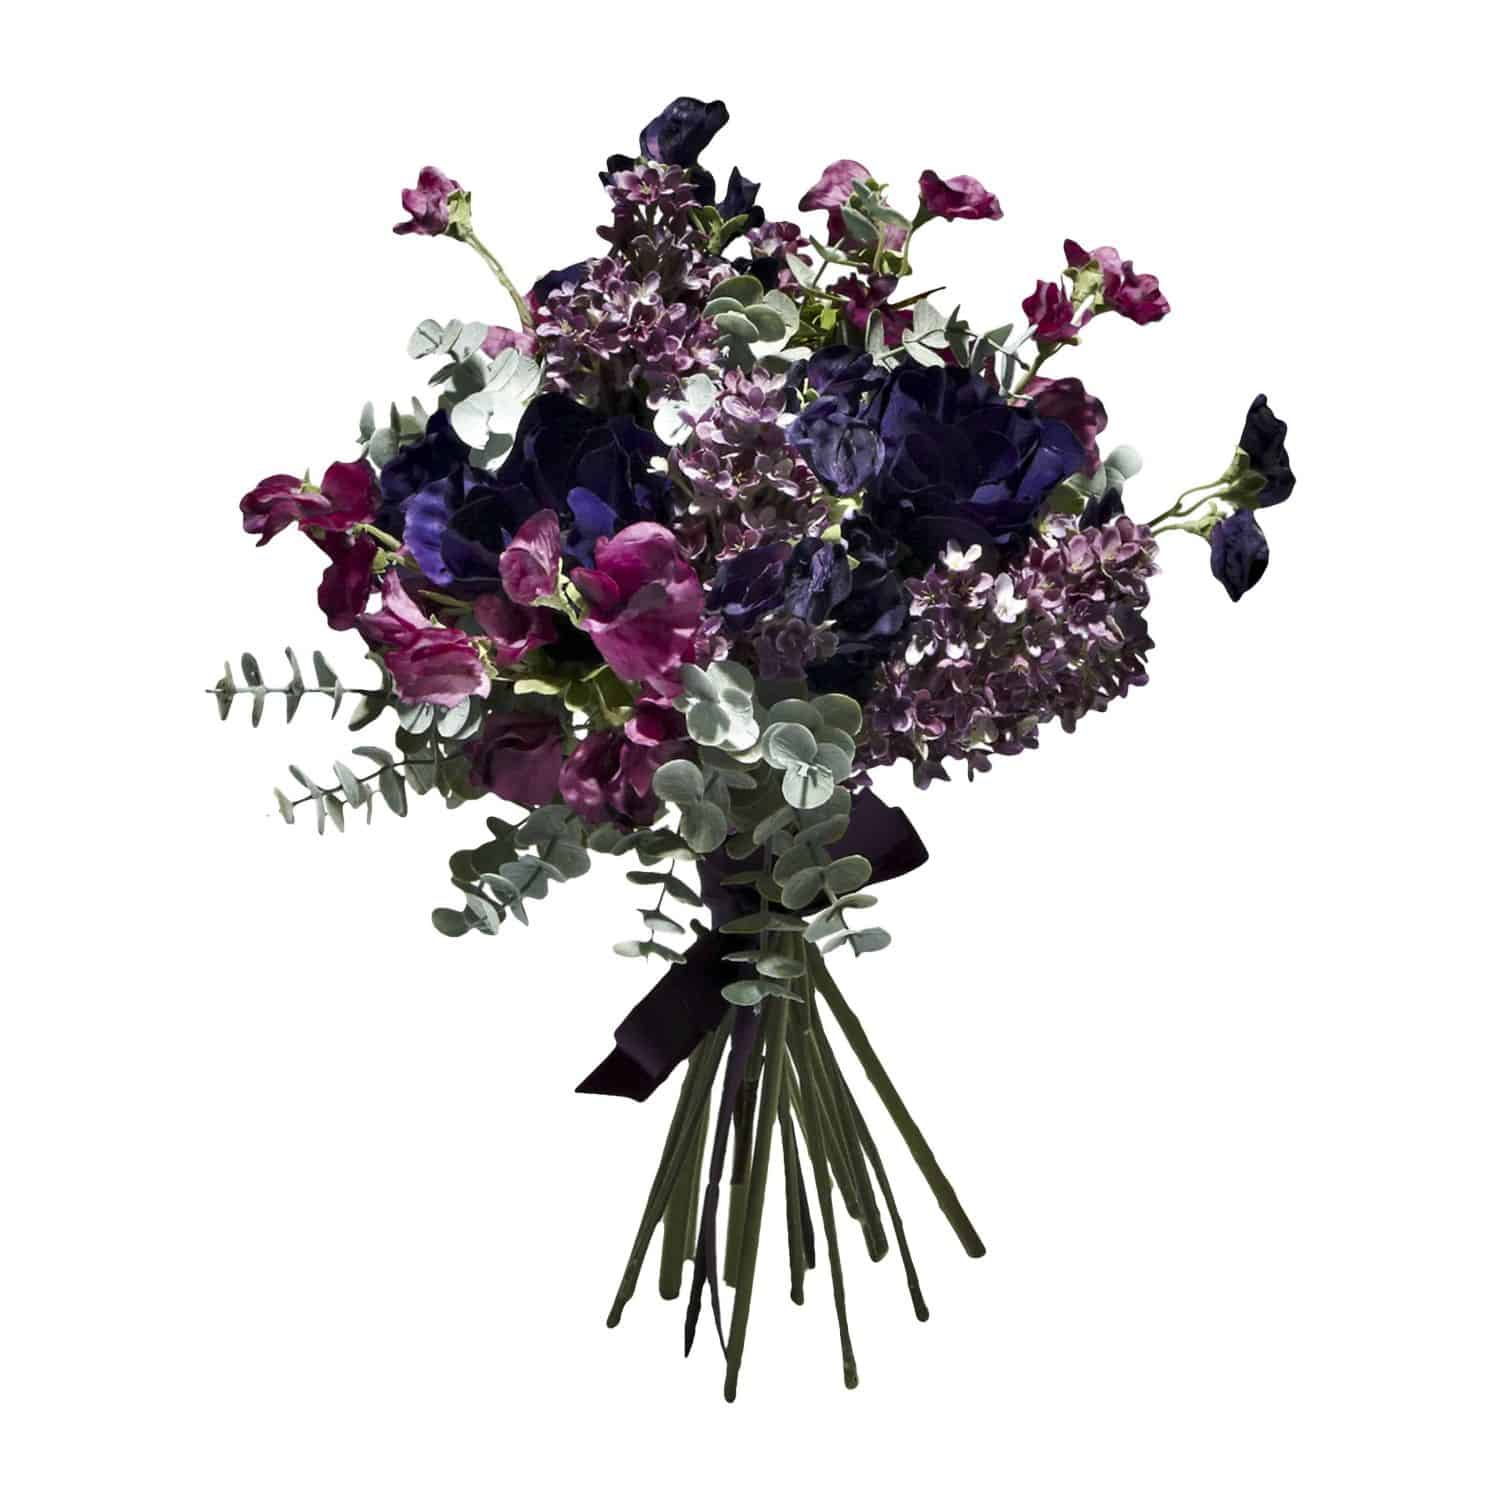 Buy & enjoy our beautiful handtied spring silk flower bouquet of artificial sweet pea in lilac lavender & purple with anemone artificial flower & eucalyptus.